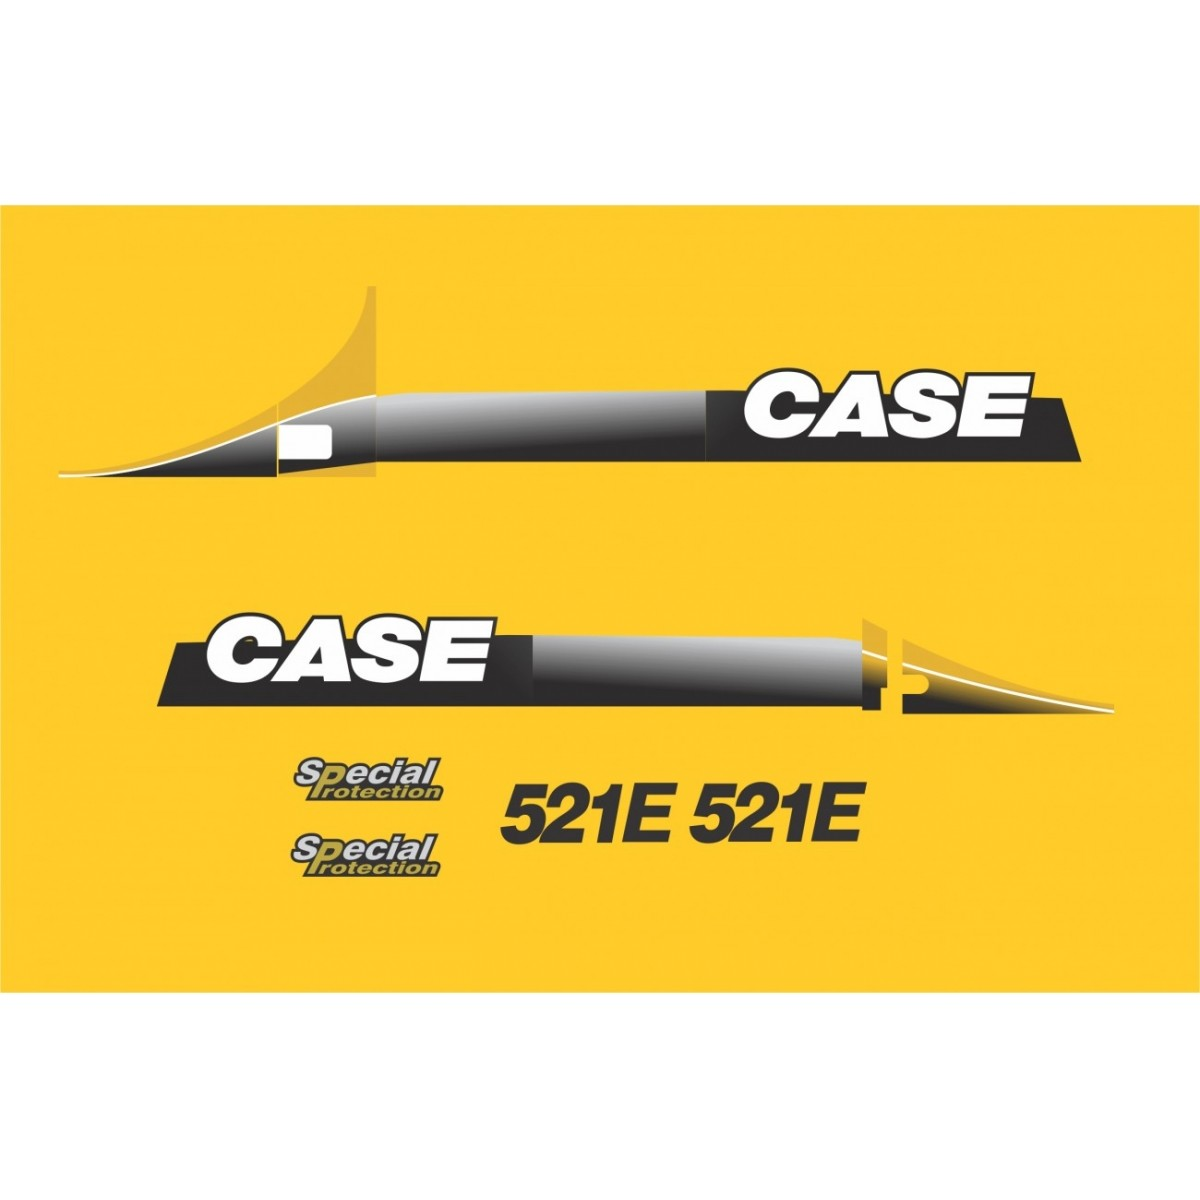 Kit Adesivos Case 521e - Decalx